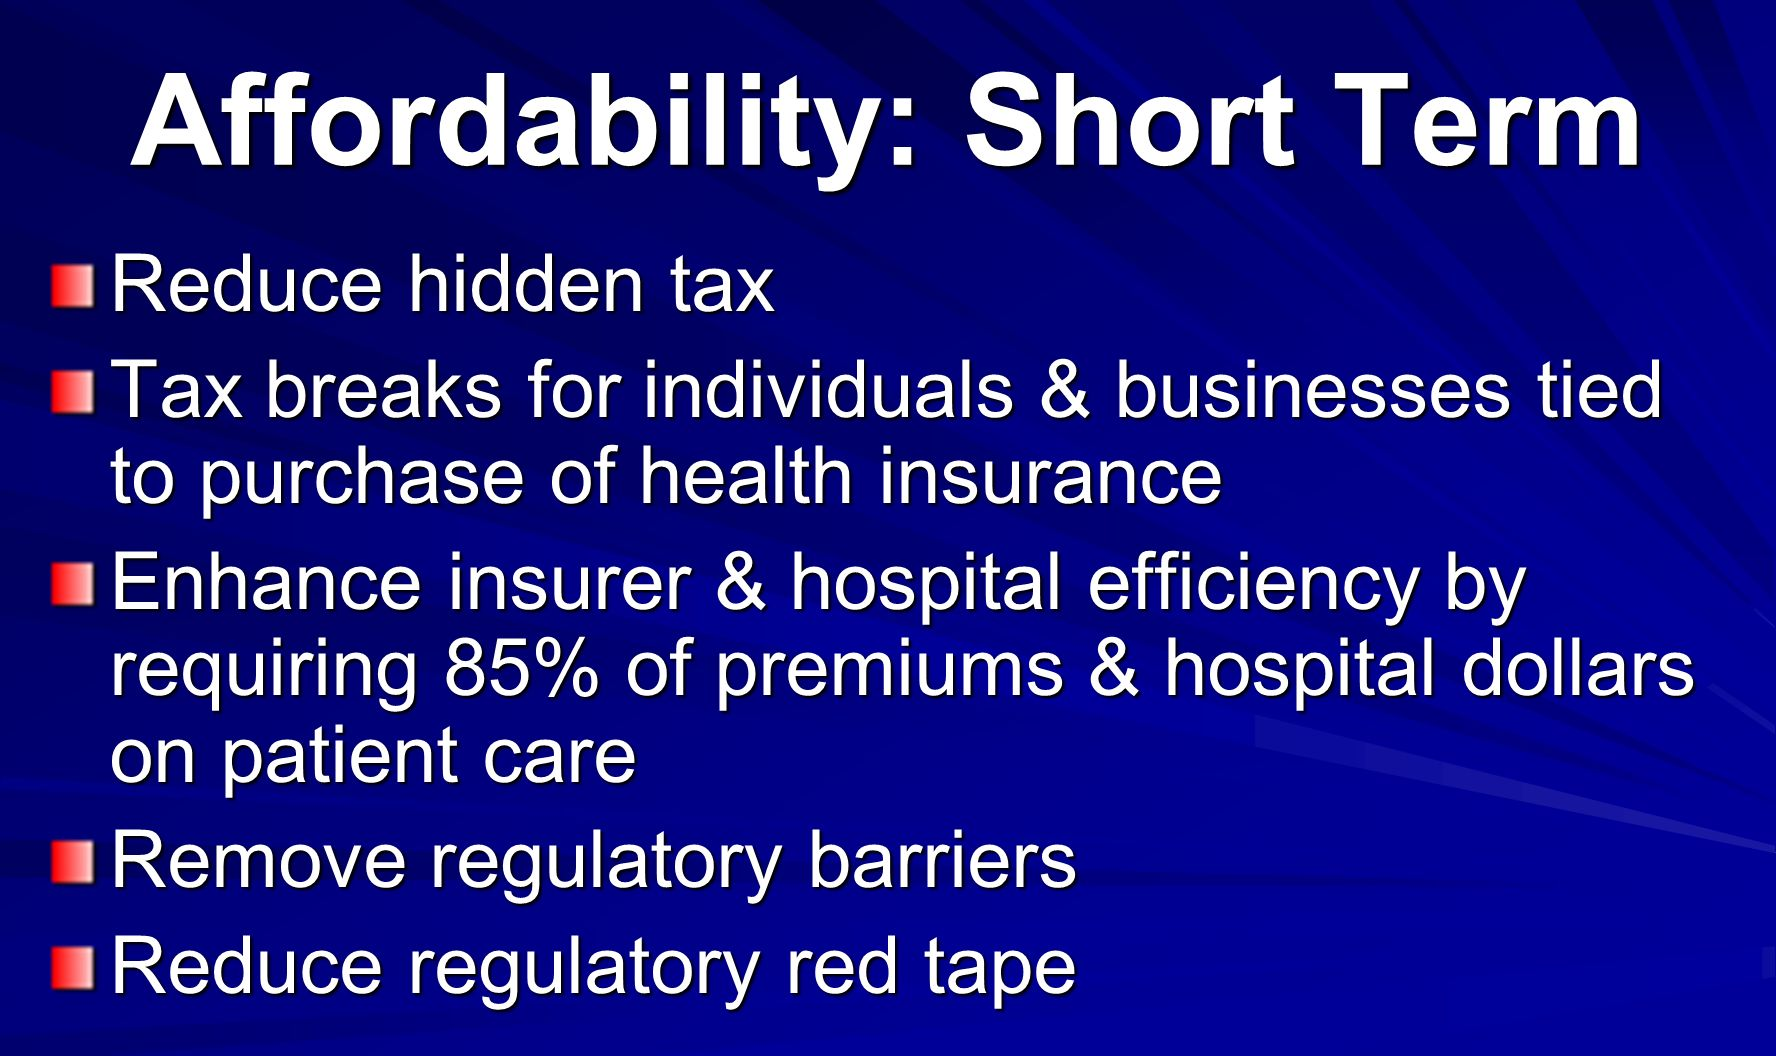 Affordability: Short Term Reduce hidden tax Tax breaks for individuals & businesses tied to purchase of health insurance Enhance insurer & hospital efficiency by requiring 85% of premiums & hospital dollars on patient care Remove regulatory barriers Reduce regulatory red tape